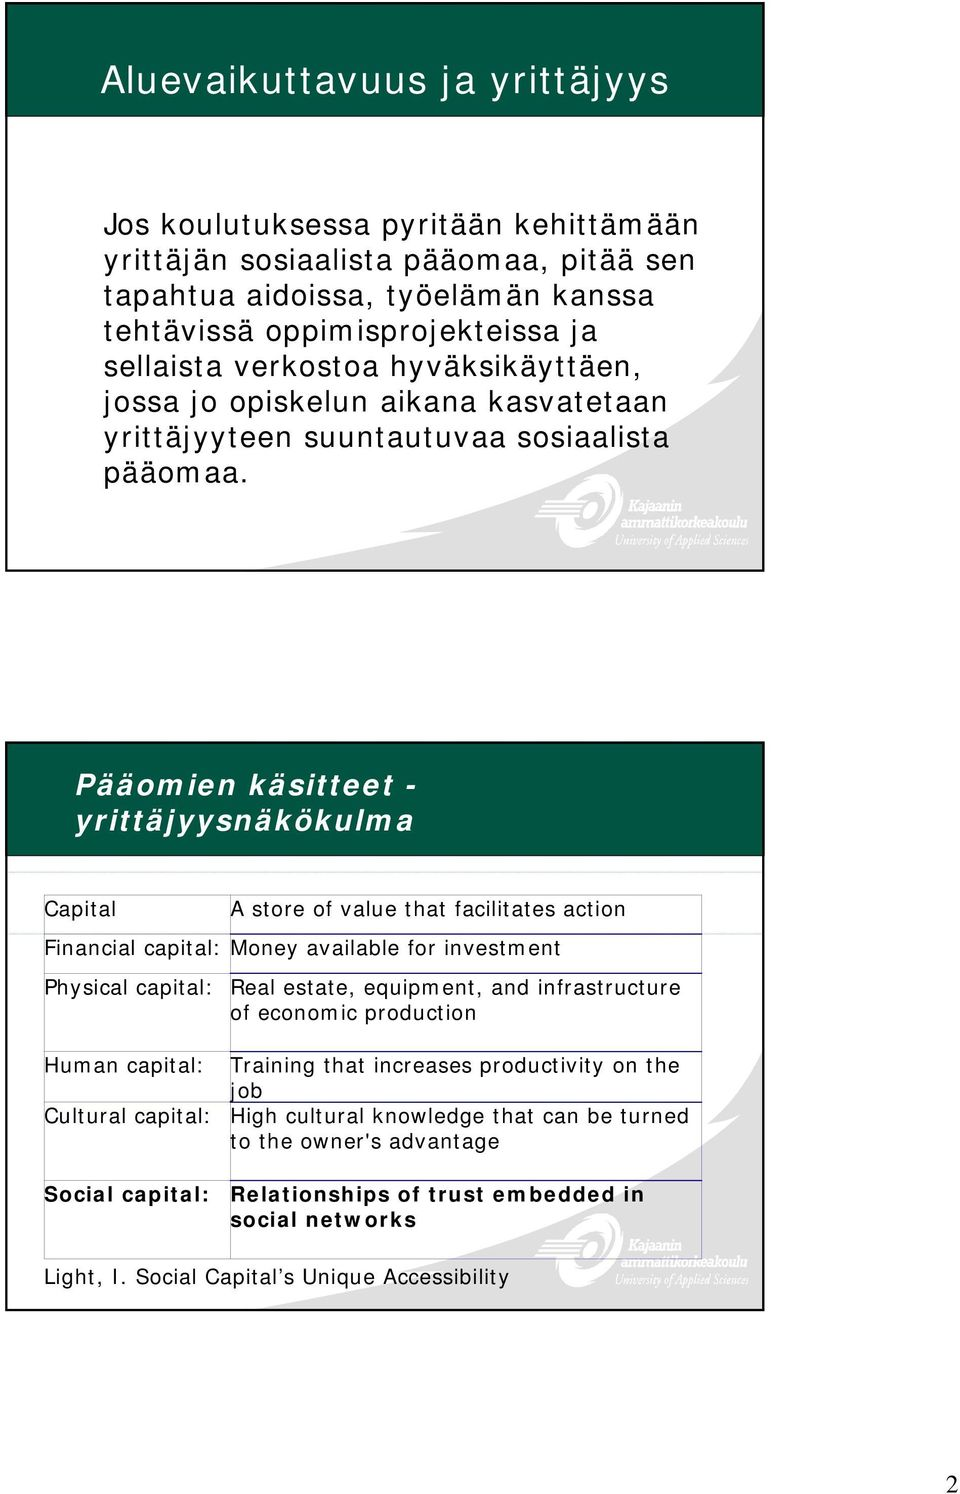 Pääomien käsitteet - yrittäjyysnäkökulma Capital Physical capital: A store of value that facilitates action Financial capital: Money available for investment Real estate, equipment, and